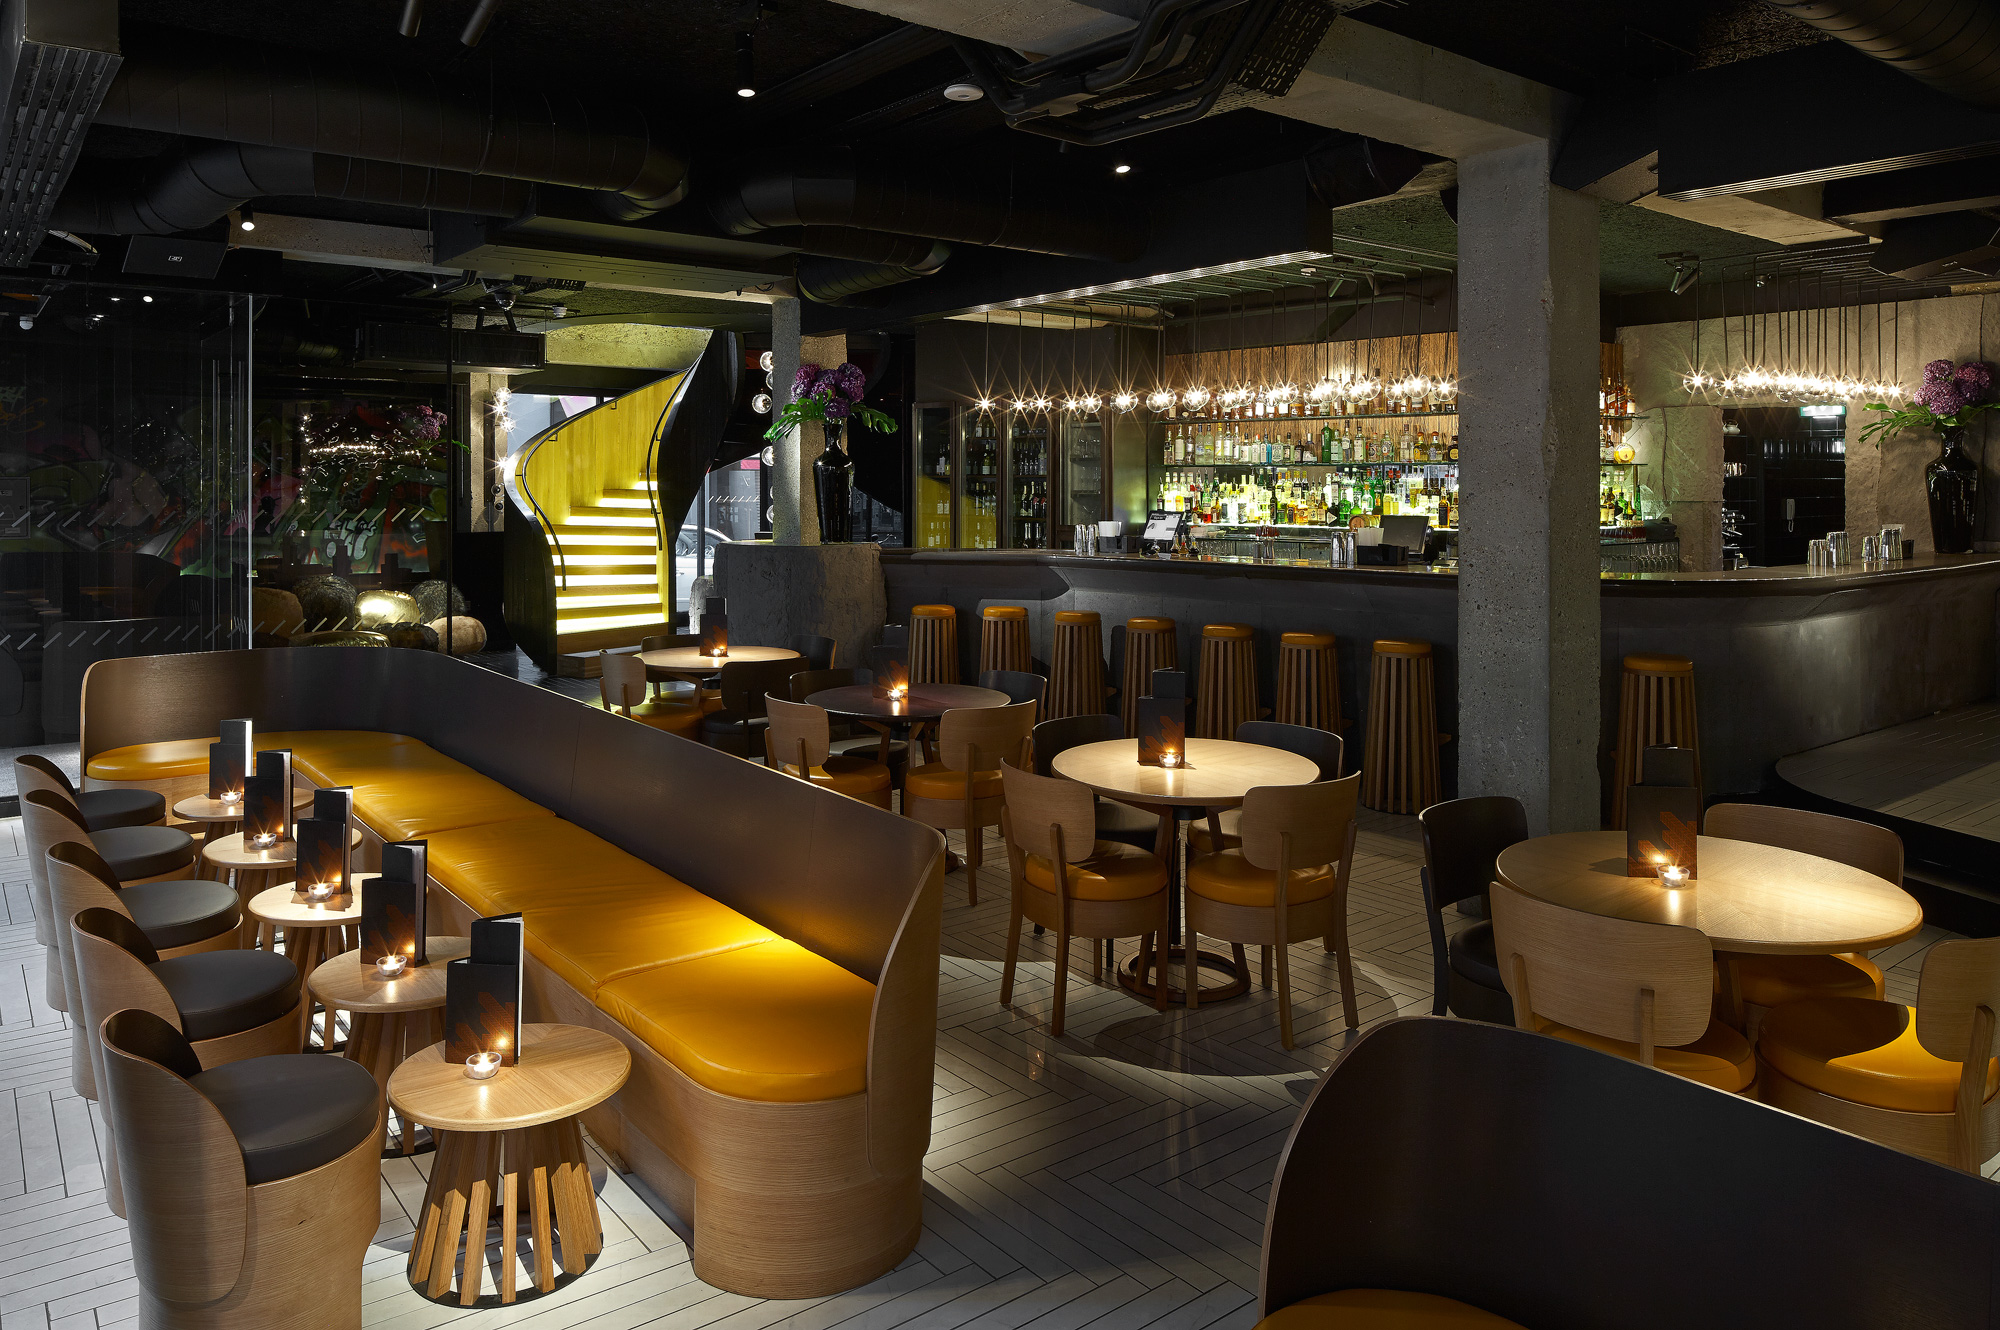 Chotto Matte - Where Peruvian Meets Japanese For A Match Made in Culinary Heaven